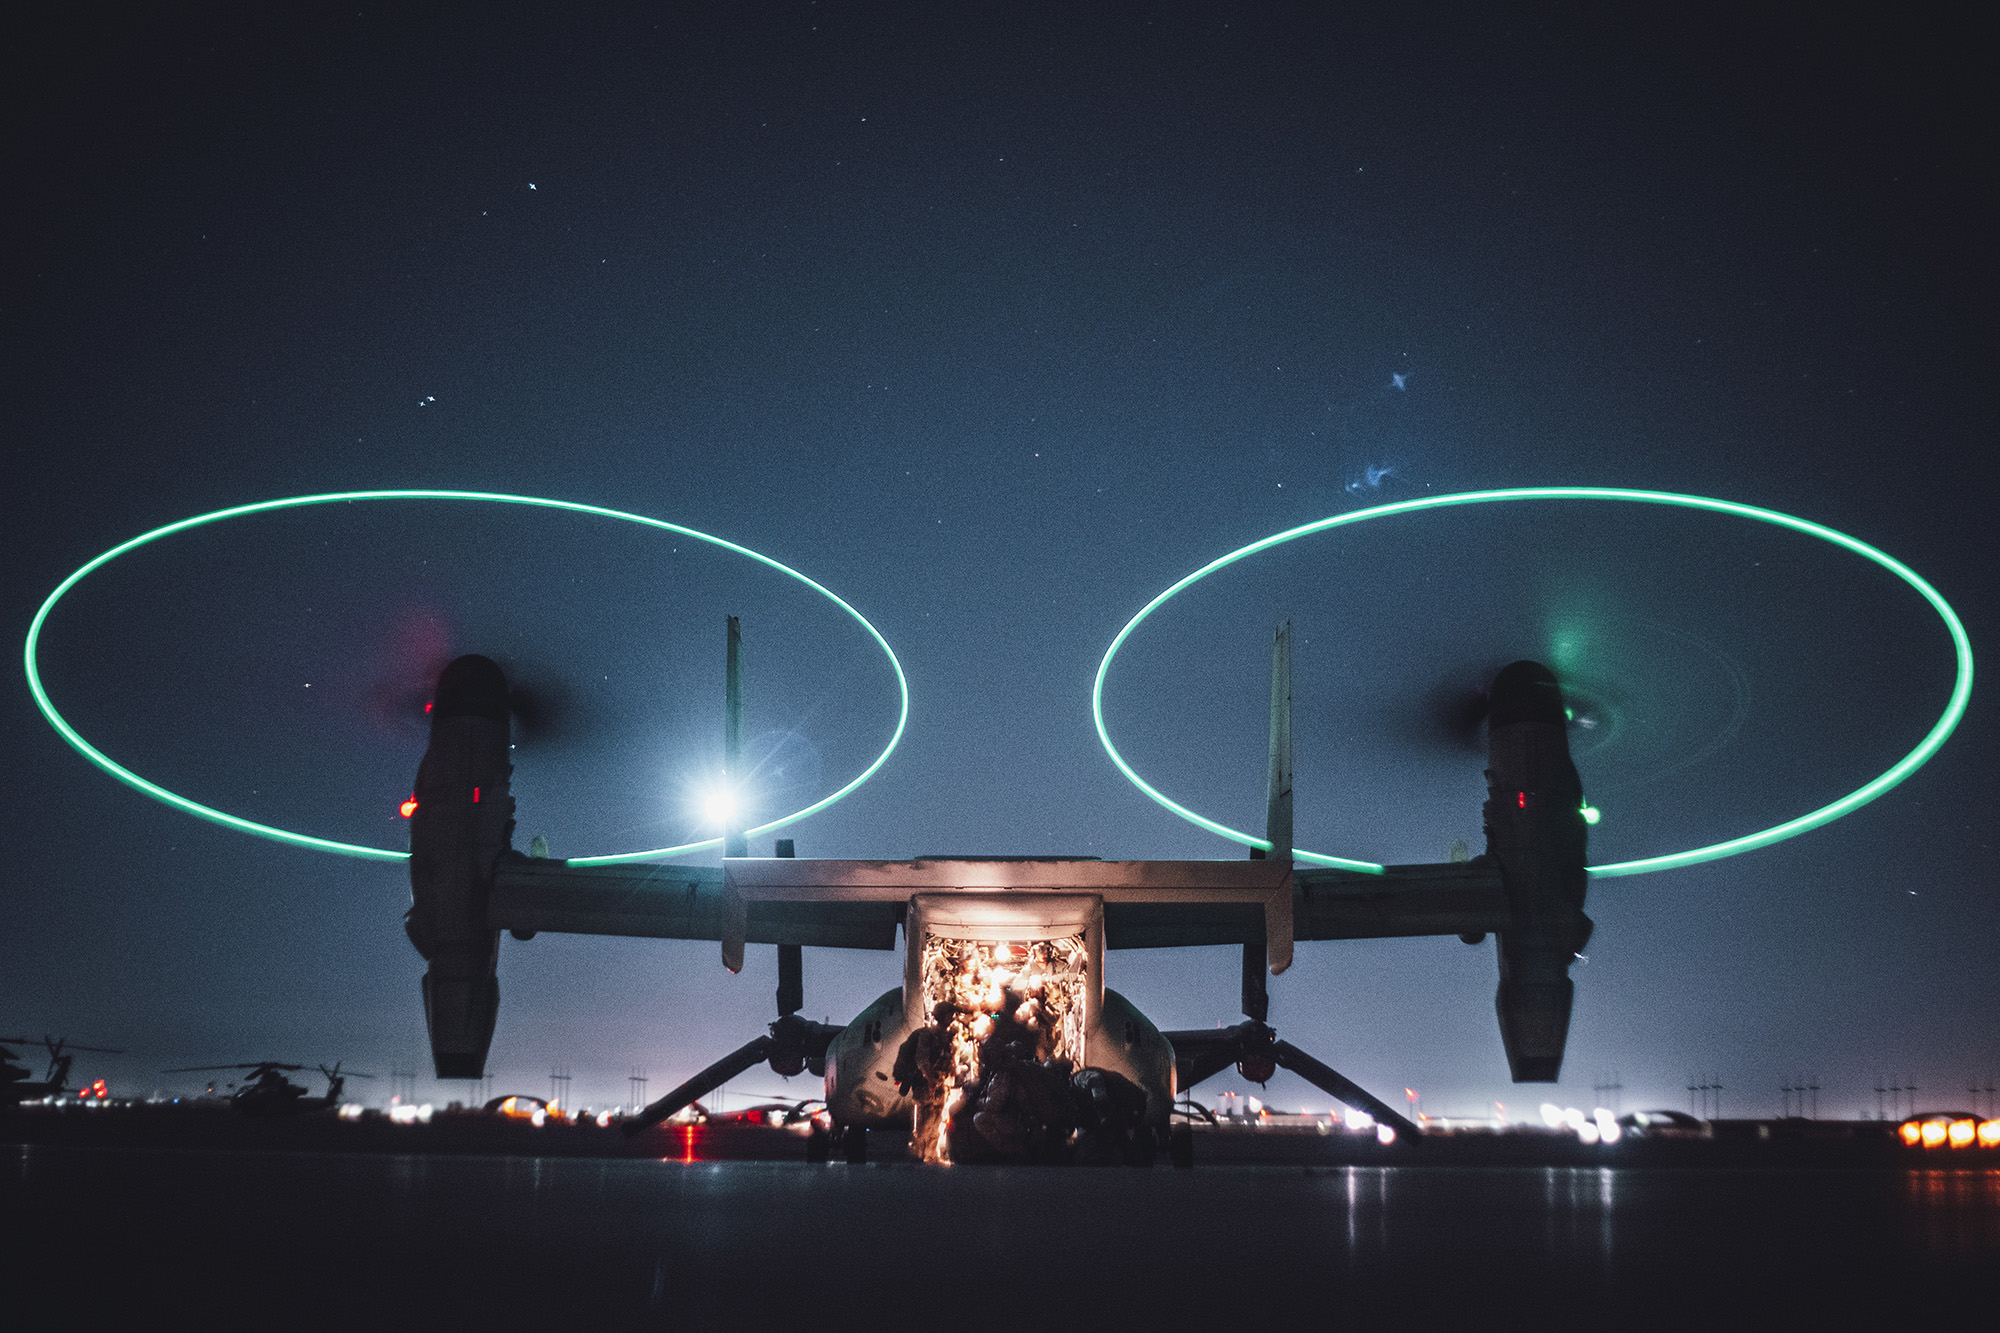 Marines with the All Domain Reconnaissance Detachment, 11th Marine Expeditionary Unit, load into an MV-22 Osprey to conduct a reconnaissance and surveillance mission insertion during a realistic urban training exercise at Marine Corps Air Station Yuma, Ariz., Feb. 19, 2020. (Staff Sgt. Donald Holbert/Marine Corps)